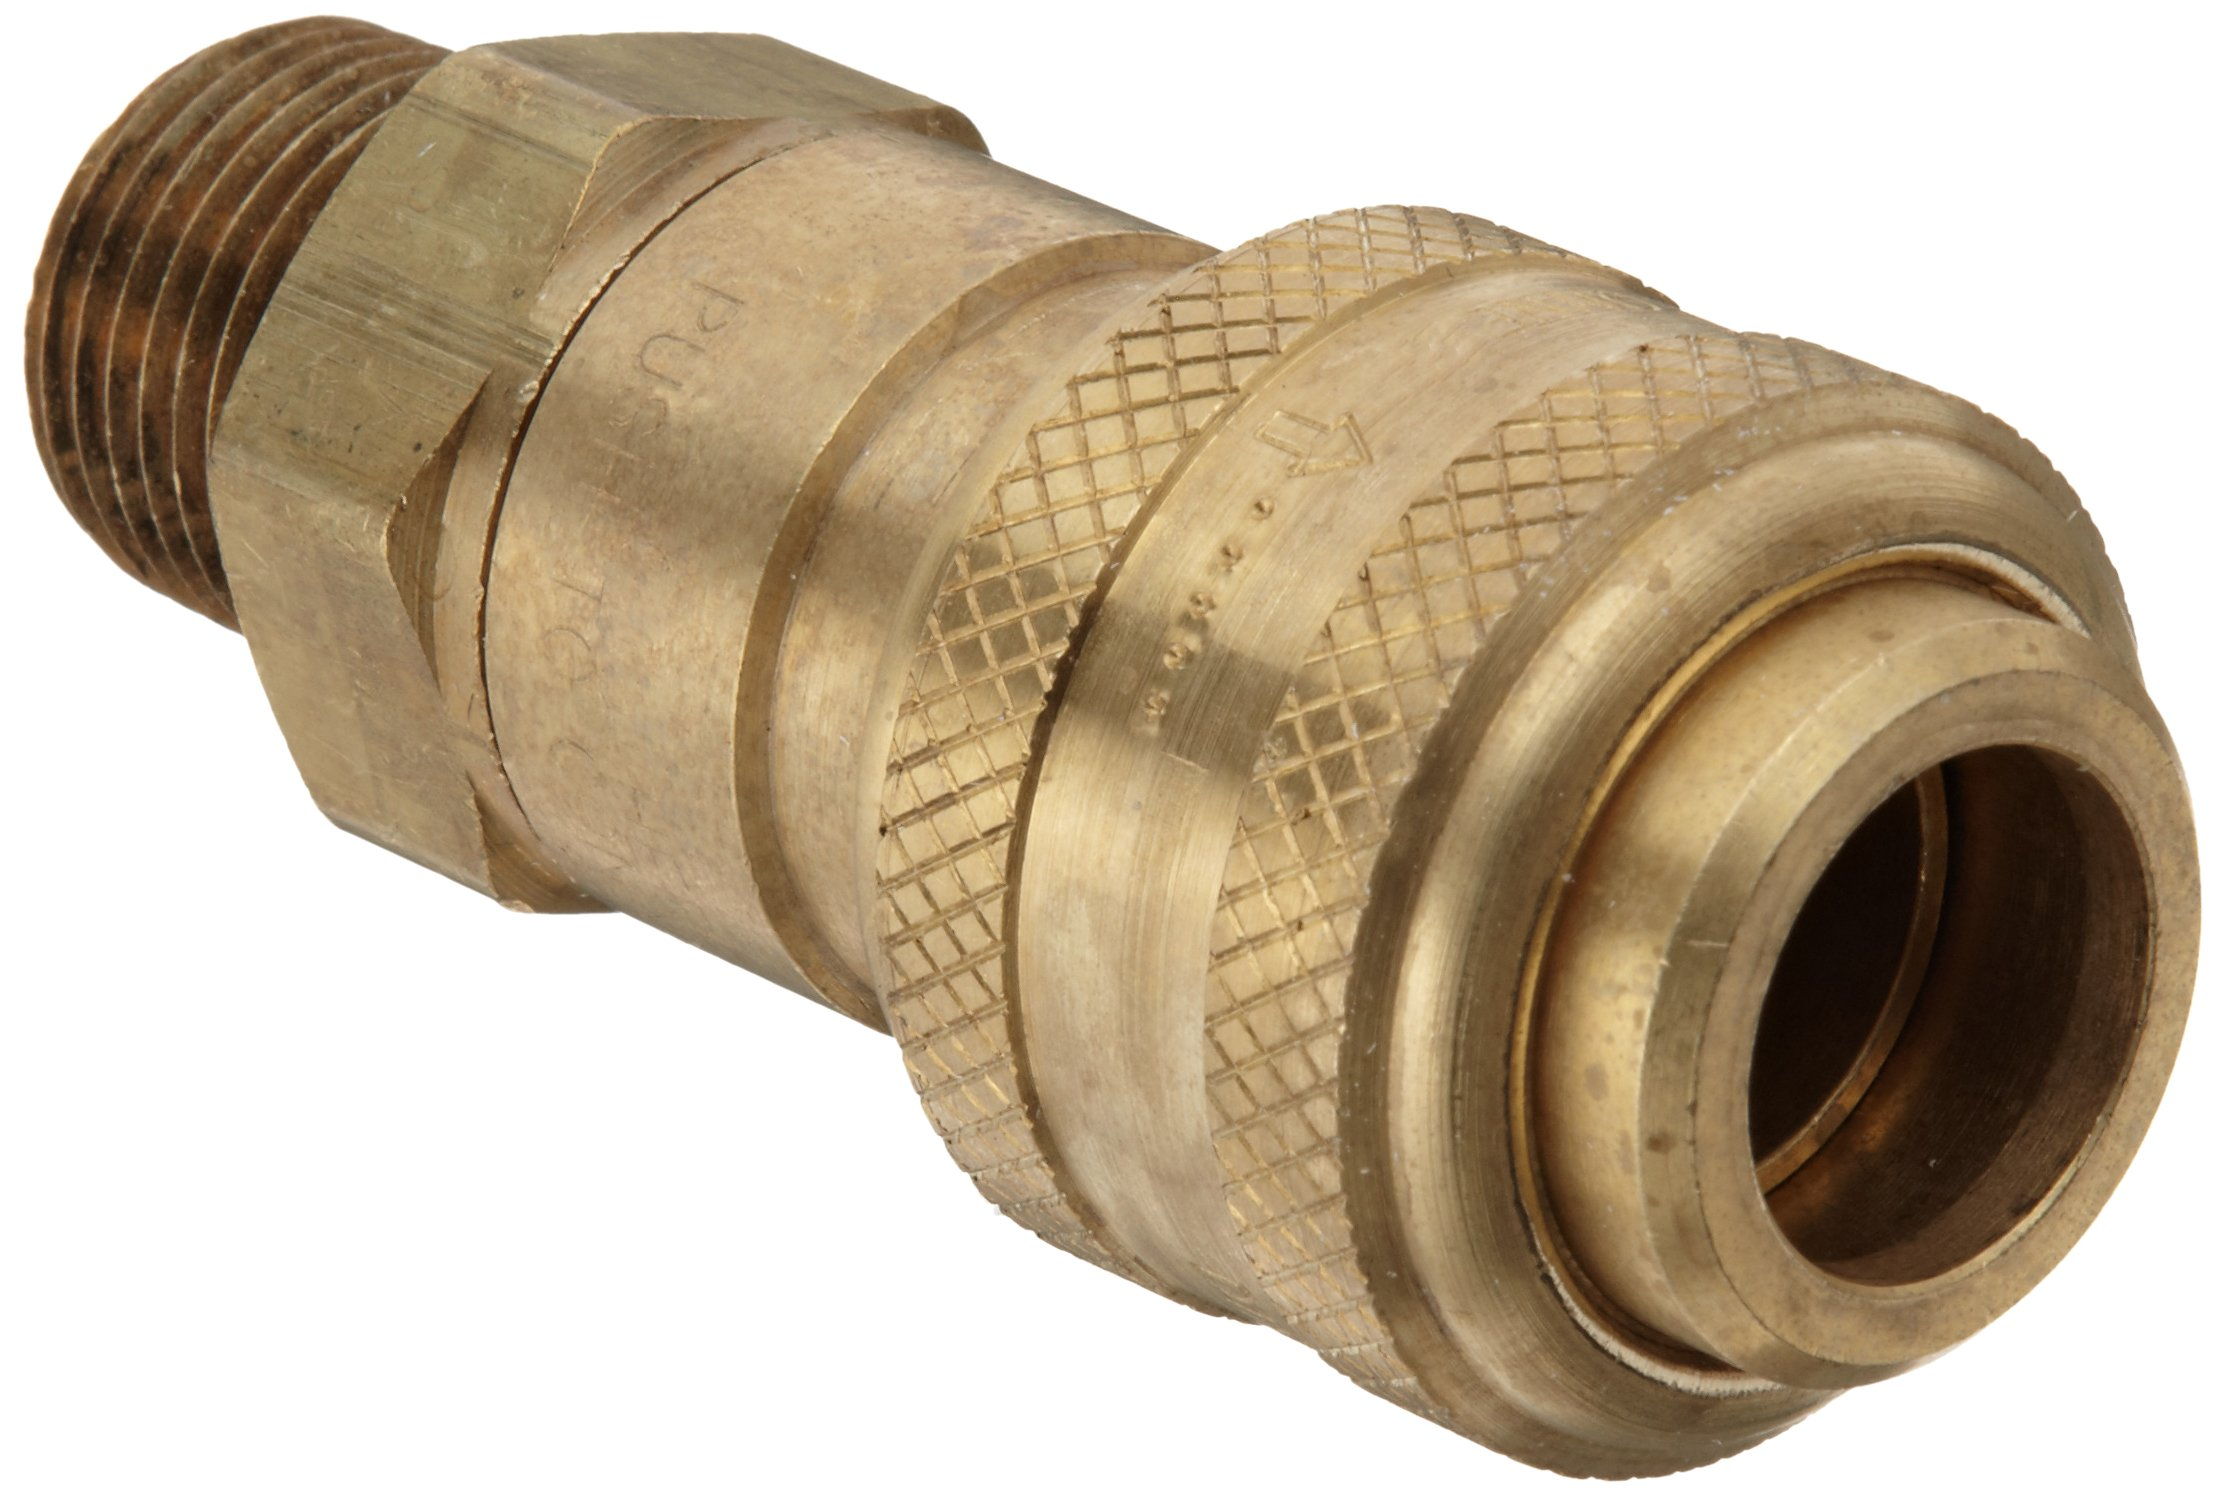 Dixon DCB9 Brass Air Chief Industrial Interchange Quick-Connect Air Hose Fitting, 1/2'' Coupling x 1/2'' NPT Male